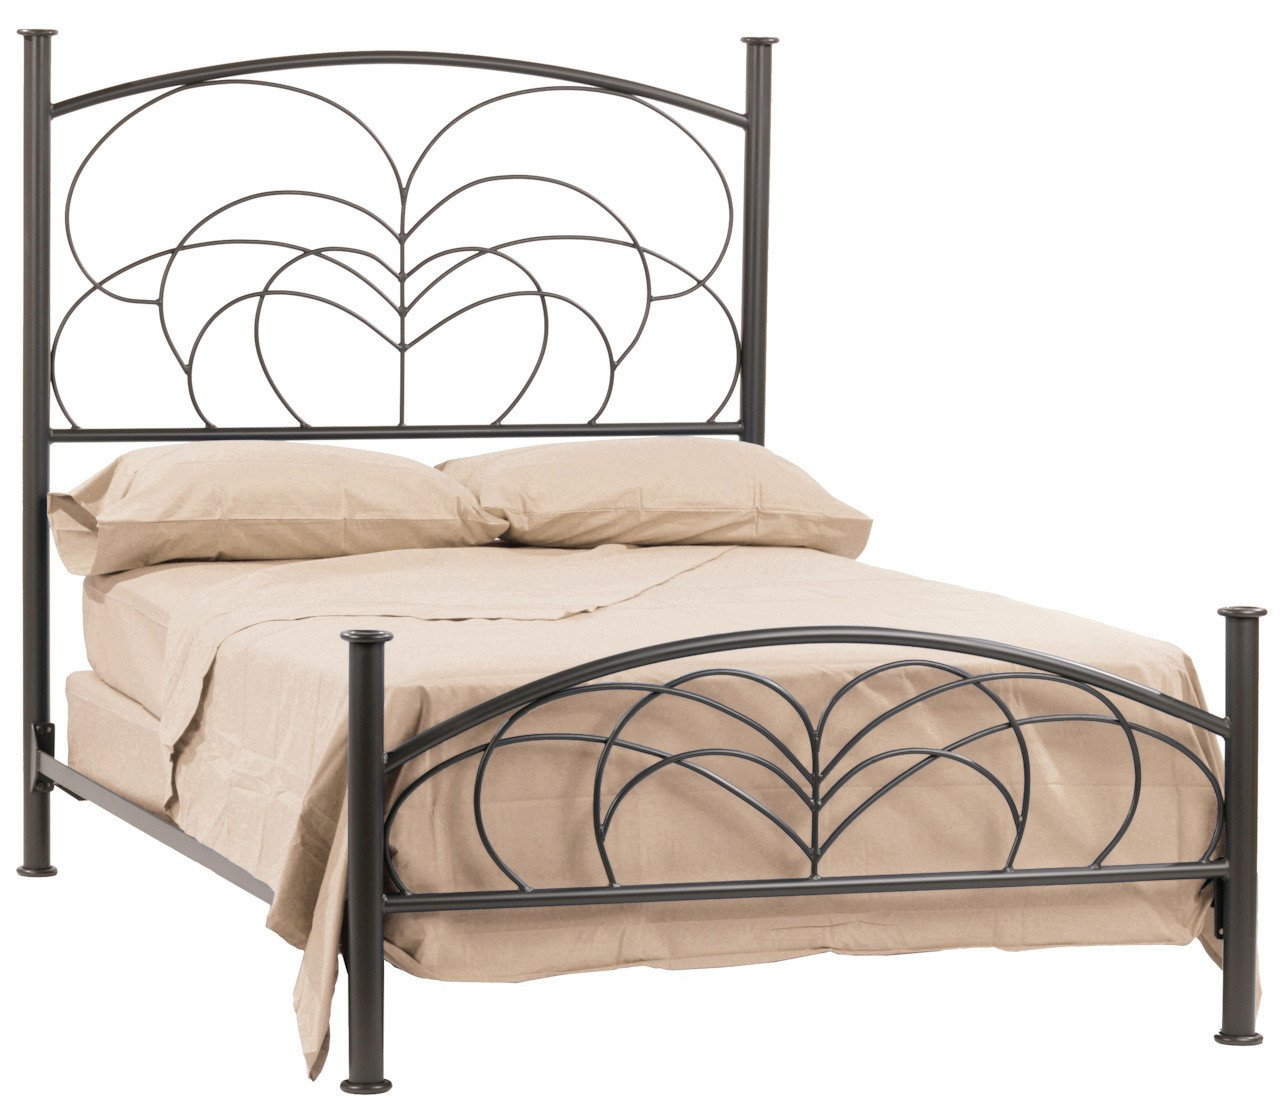 Full Bed Willow 3154 Product Photo